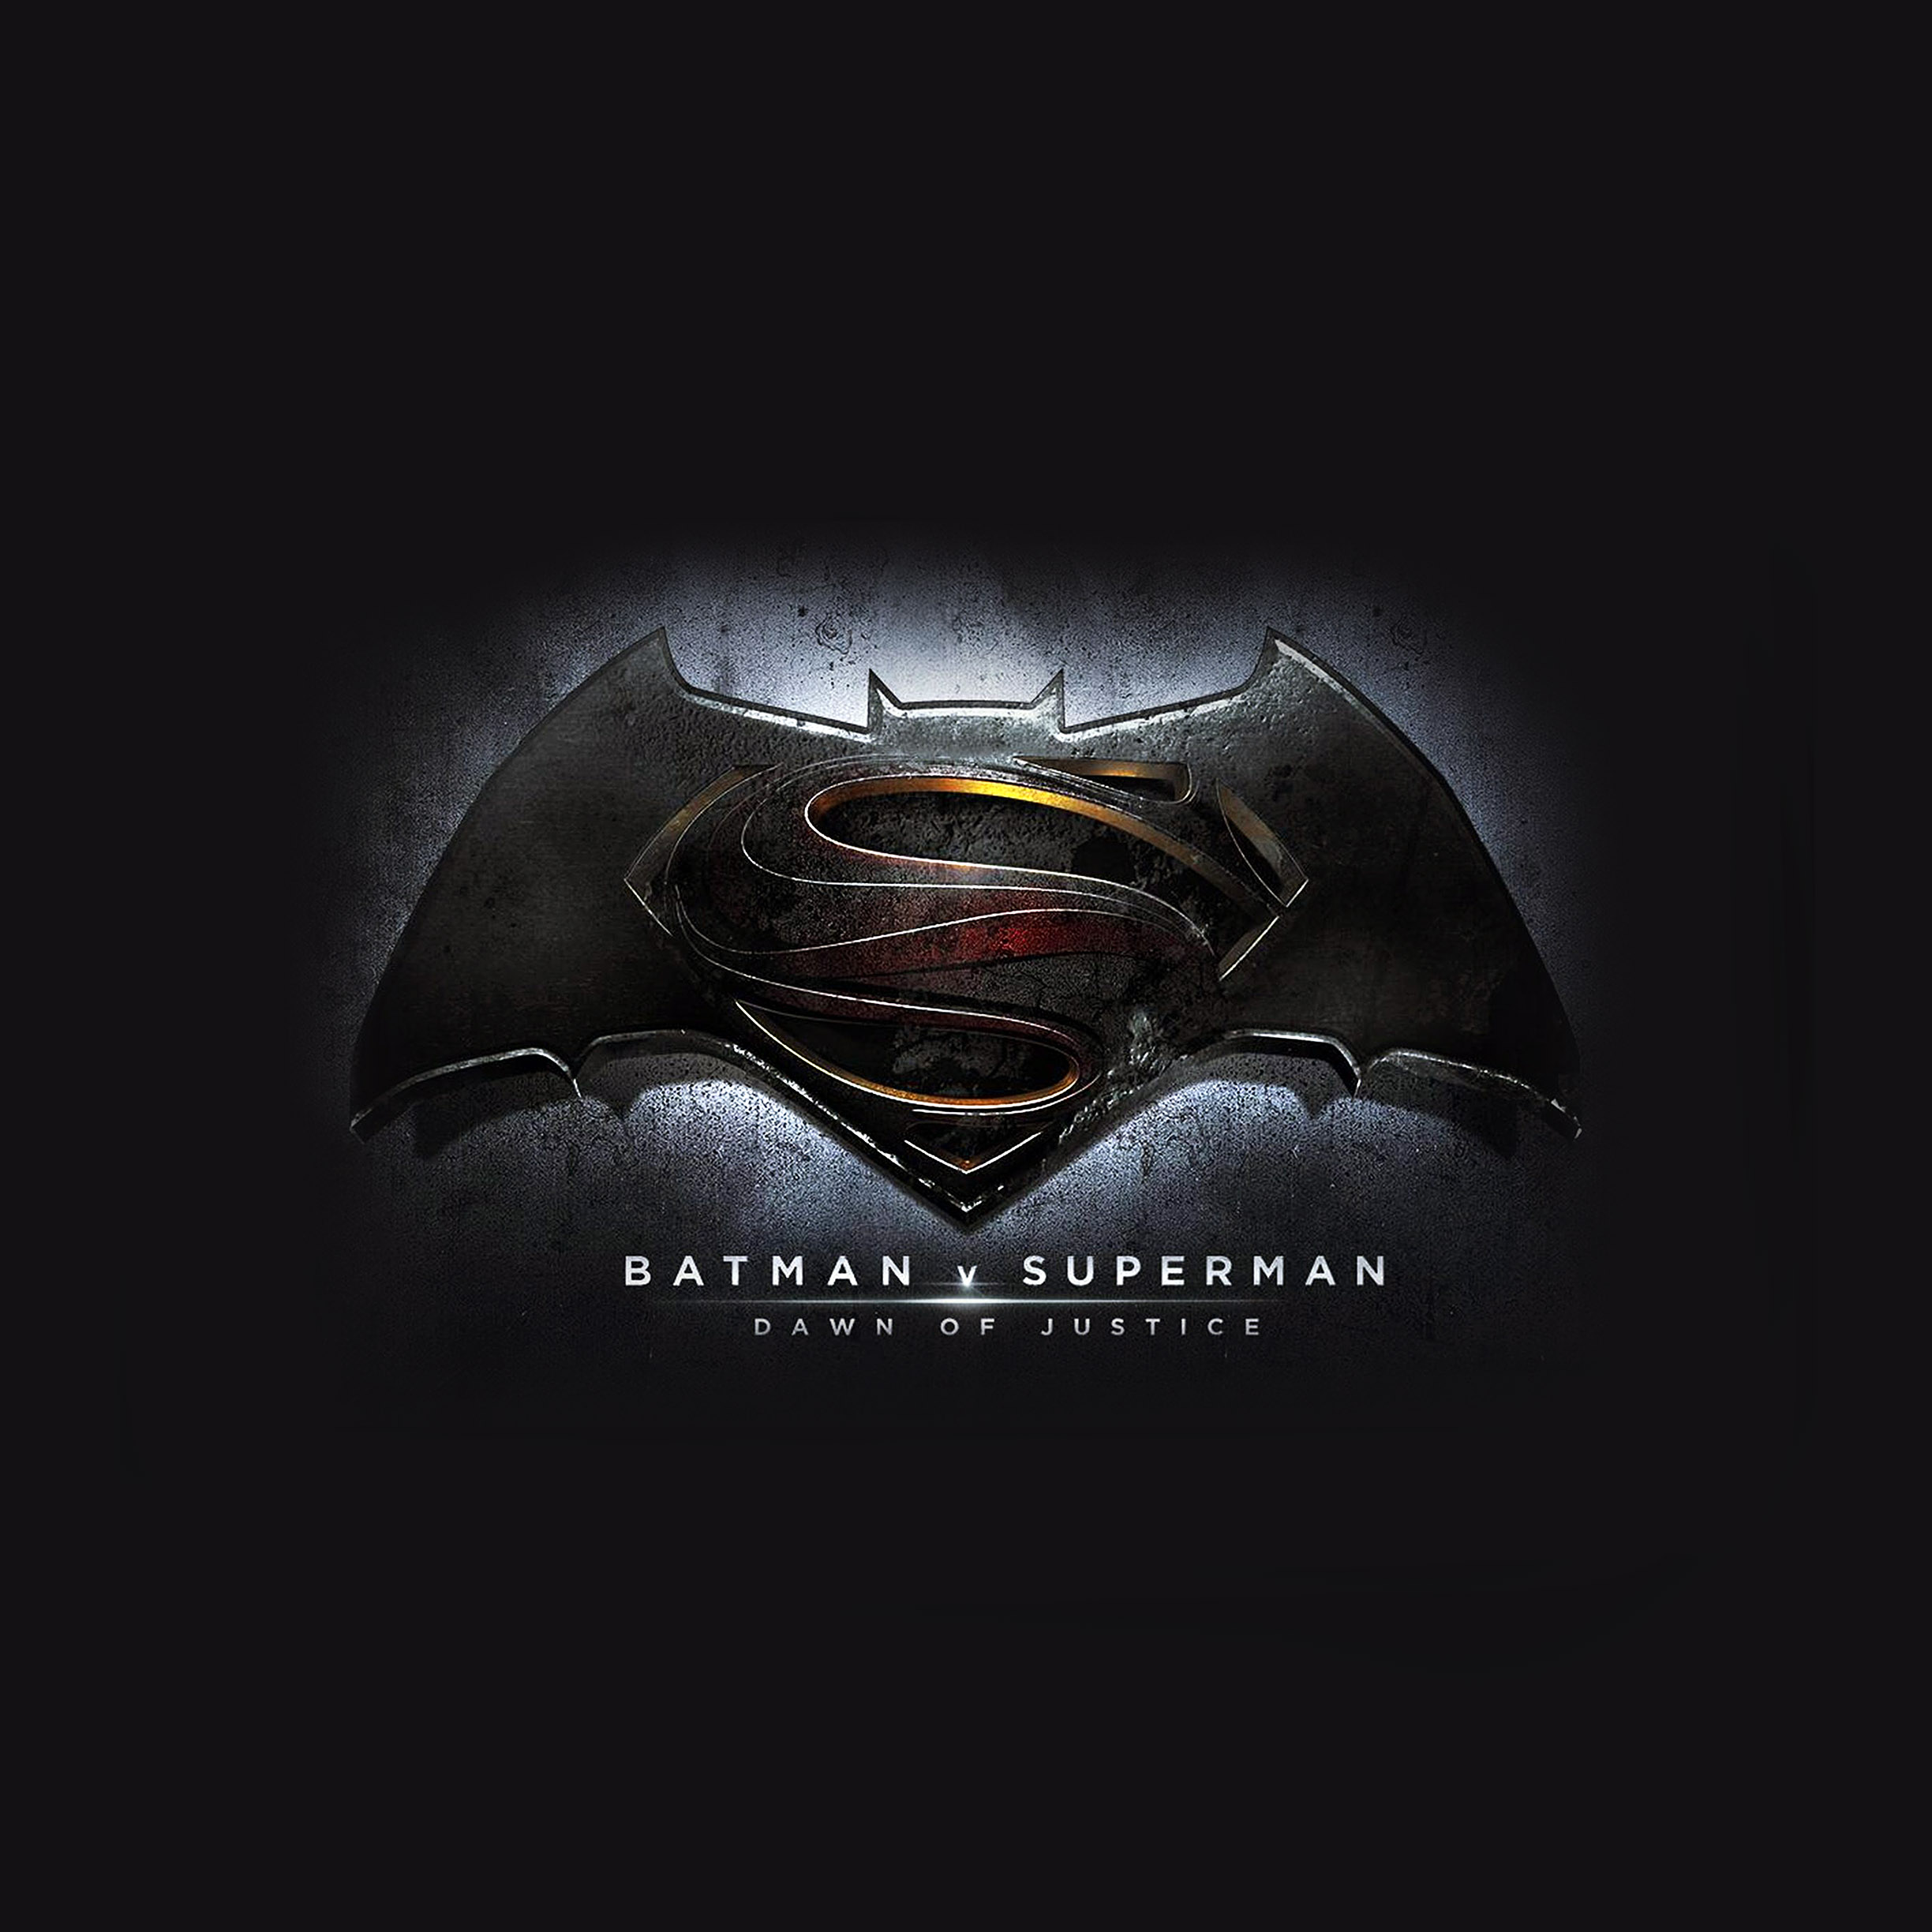 Batman Superman Logo 2013 Wallpaper Hd For Iphone 4 Car 2448x2448